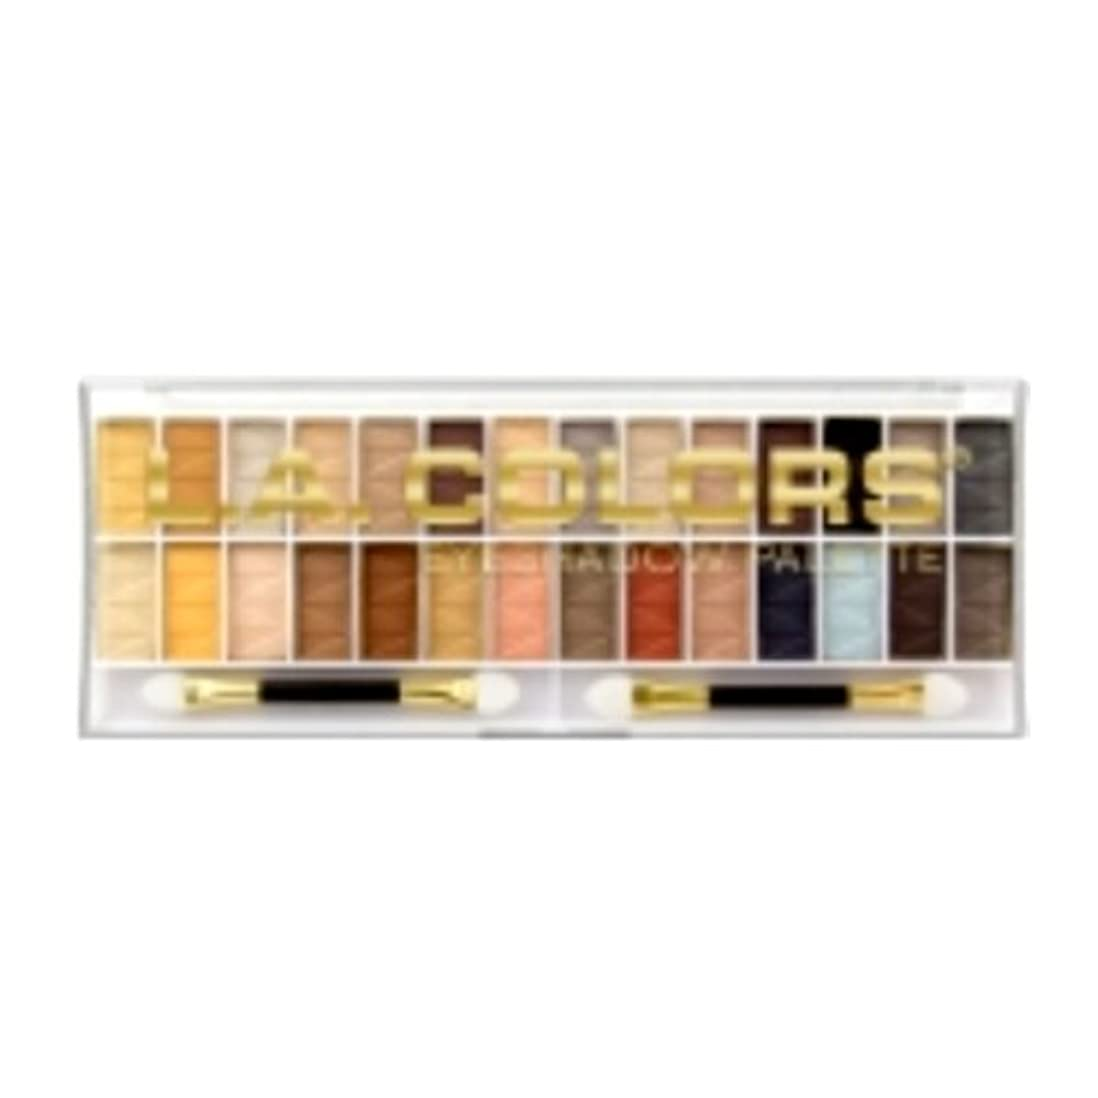 である頑張る挨拶L.A. COLORS 28 Color Eyeshadow Palette - Hollywood (並行輸入品)